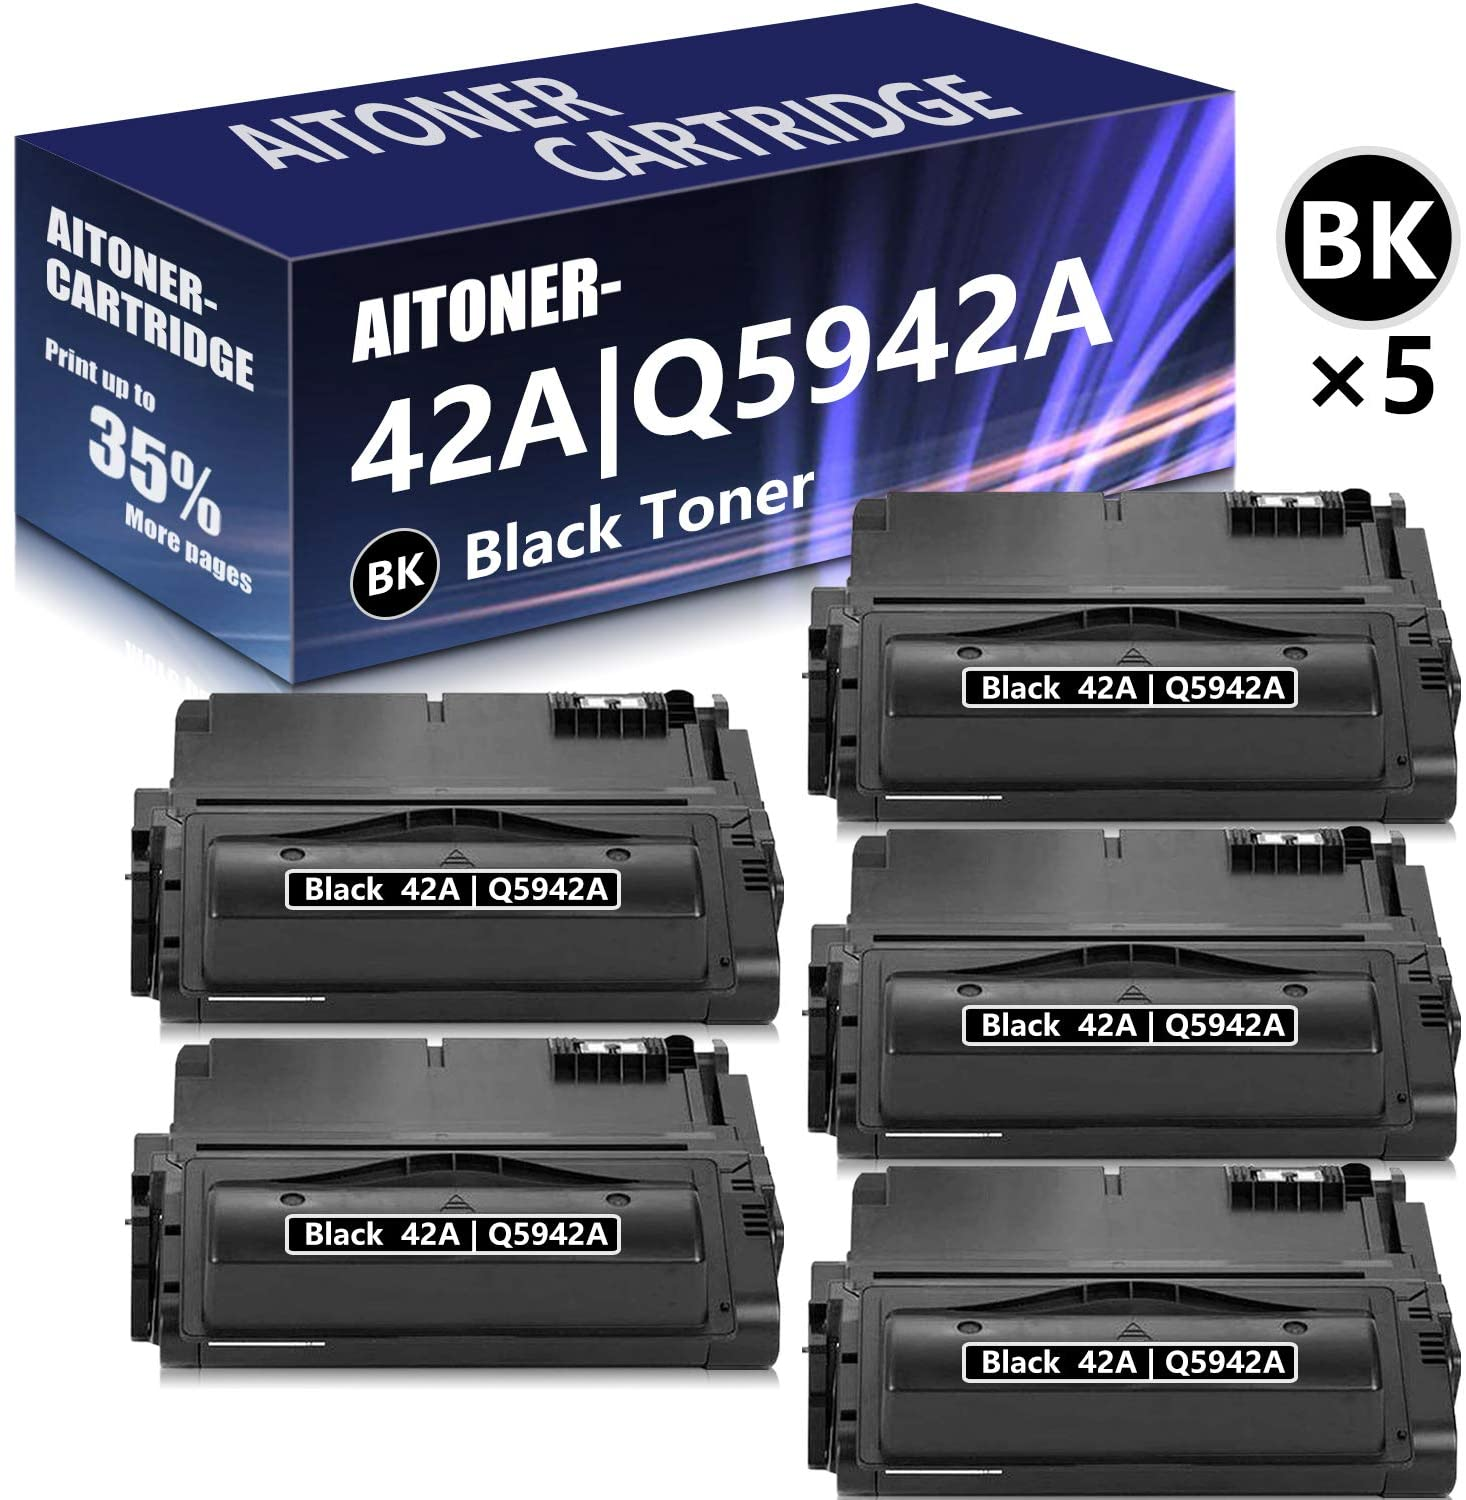 5 Pack Black Compatible for HP 42A | Q5942A Toner Cartridge Replacement for HP Laserjet 4350 4350N 4350TN 4350DTN 4345MFP 4200 4200N 4300 4300N 4300TN 4300DTN 4240 4250 4250 Printer Toner Cartridge.